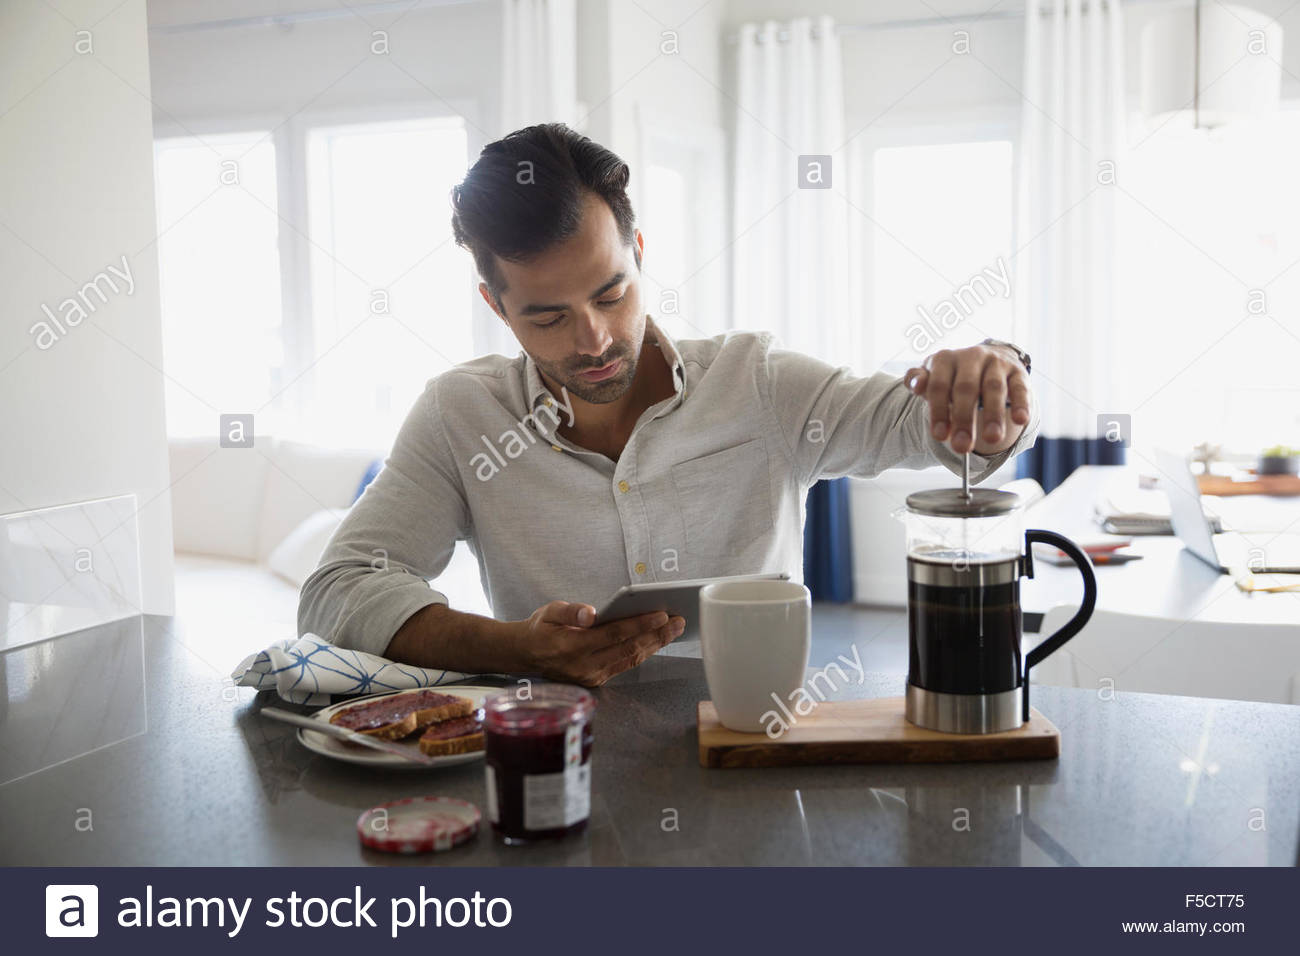 Man with digital tablet making French press coffee - Stock Image